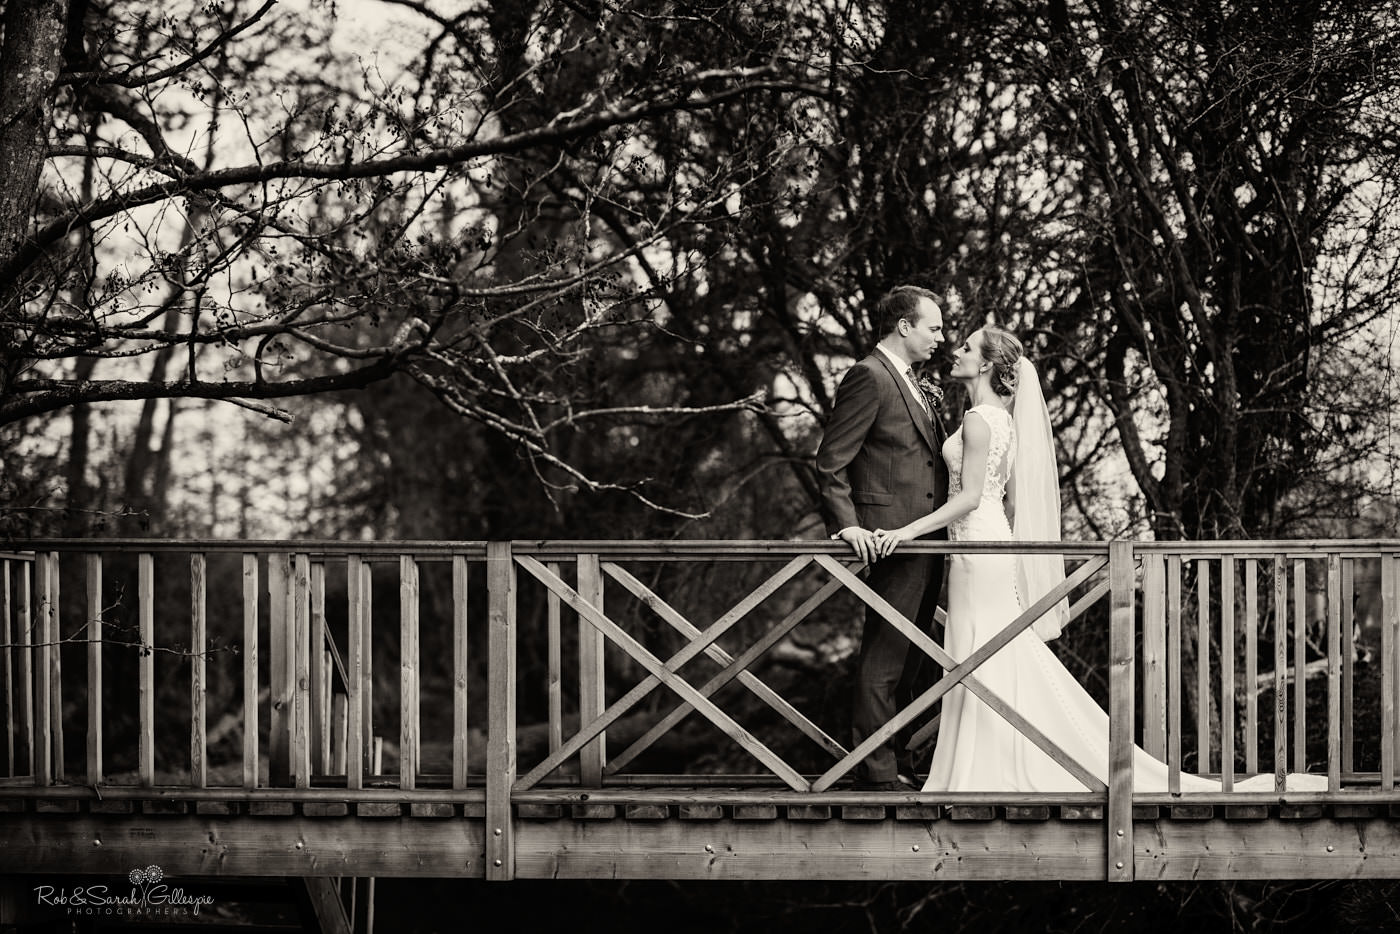 Wedding portraits at Swallows Nest Barn in Warwickshire